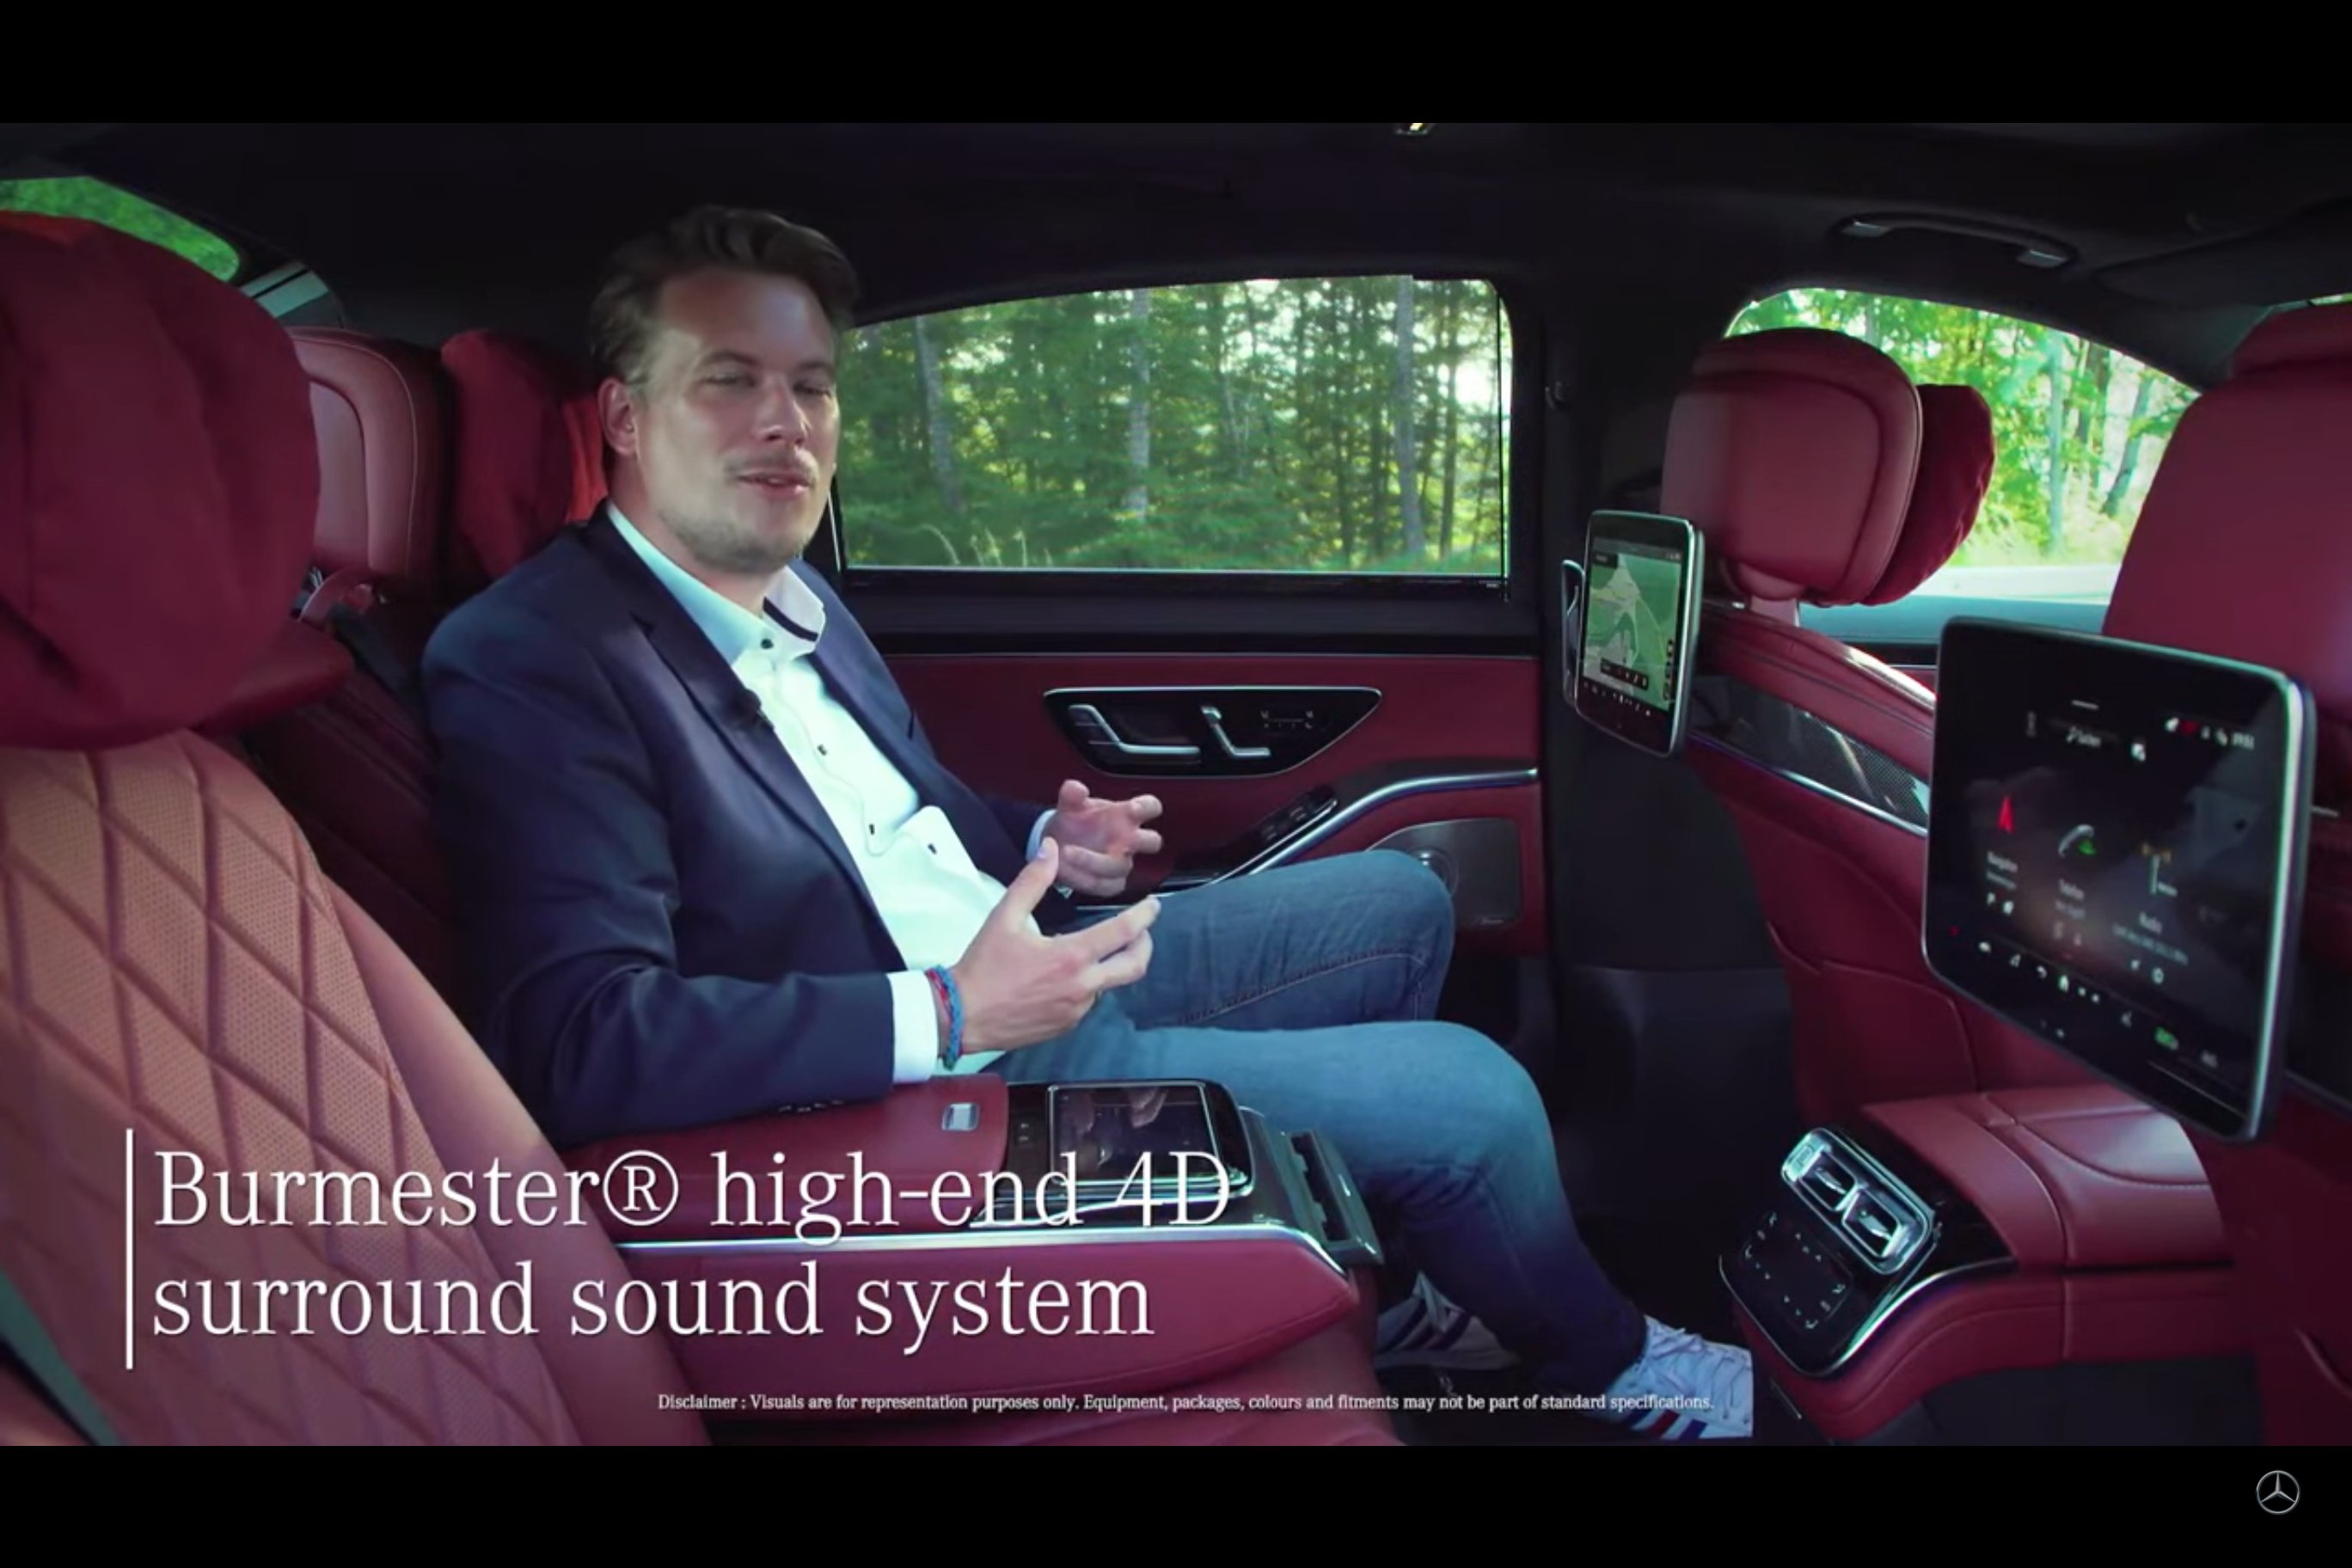 <p>Front and rear access to the very simple to use MBUX system on the new Mercedes-Benz S-Class. Also gets a feature that lets sound massage you, from that Burmester 4D surround sound system, something to experience.&nbsp;</p>